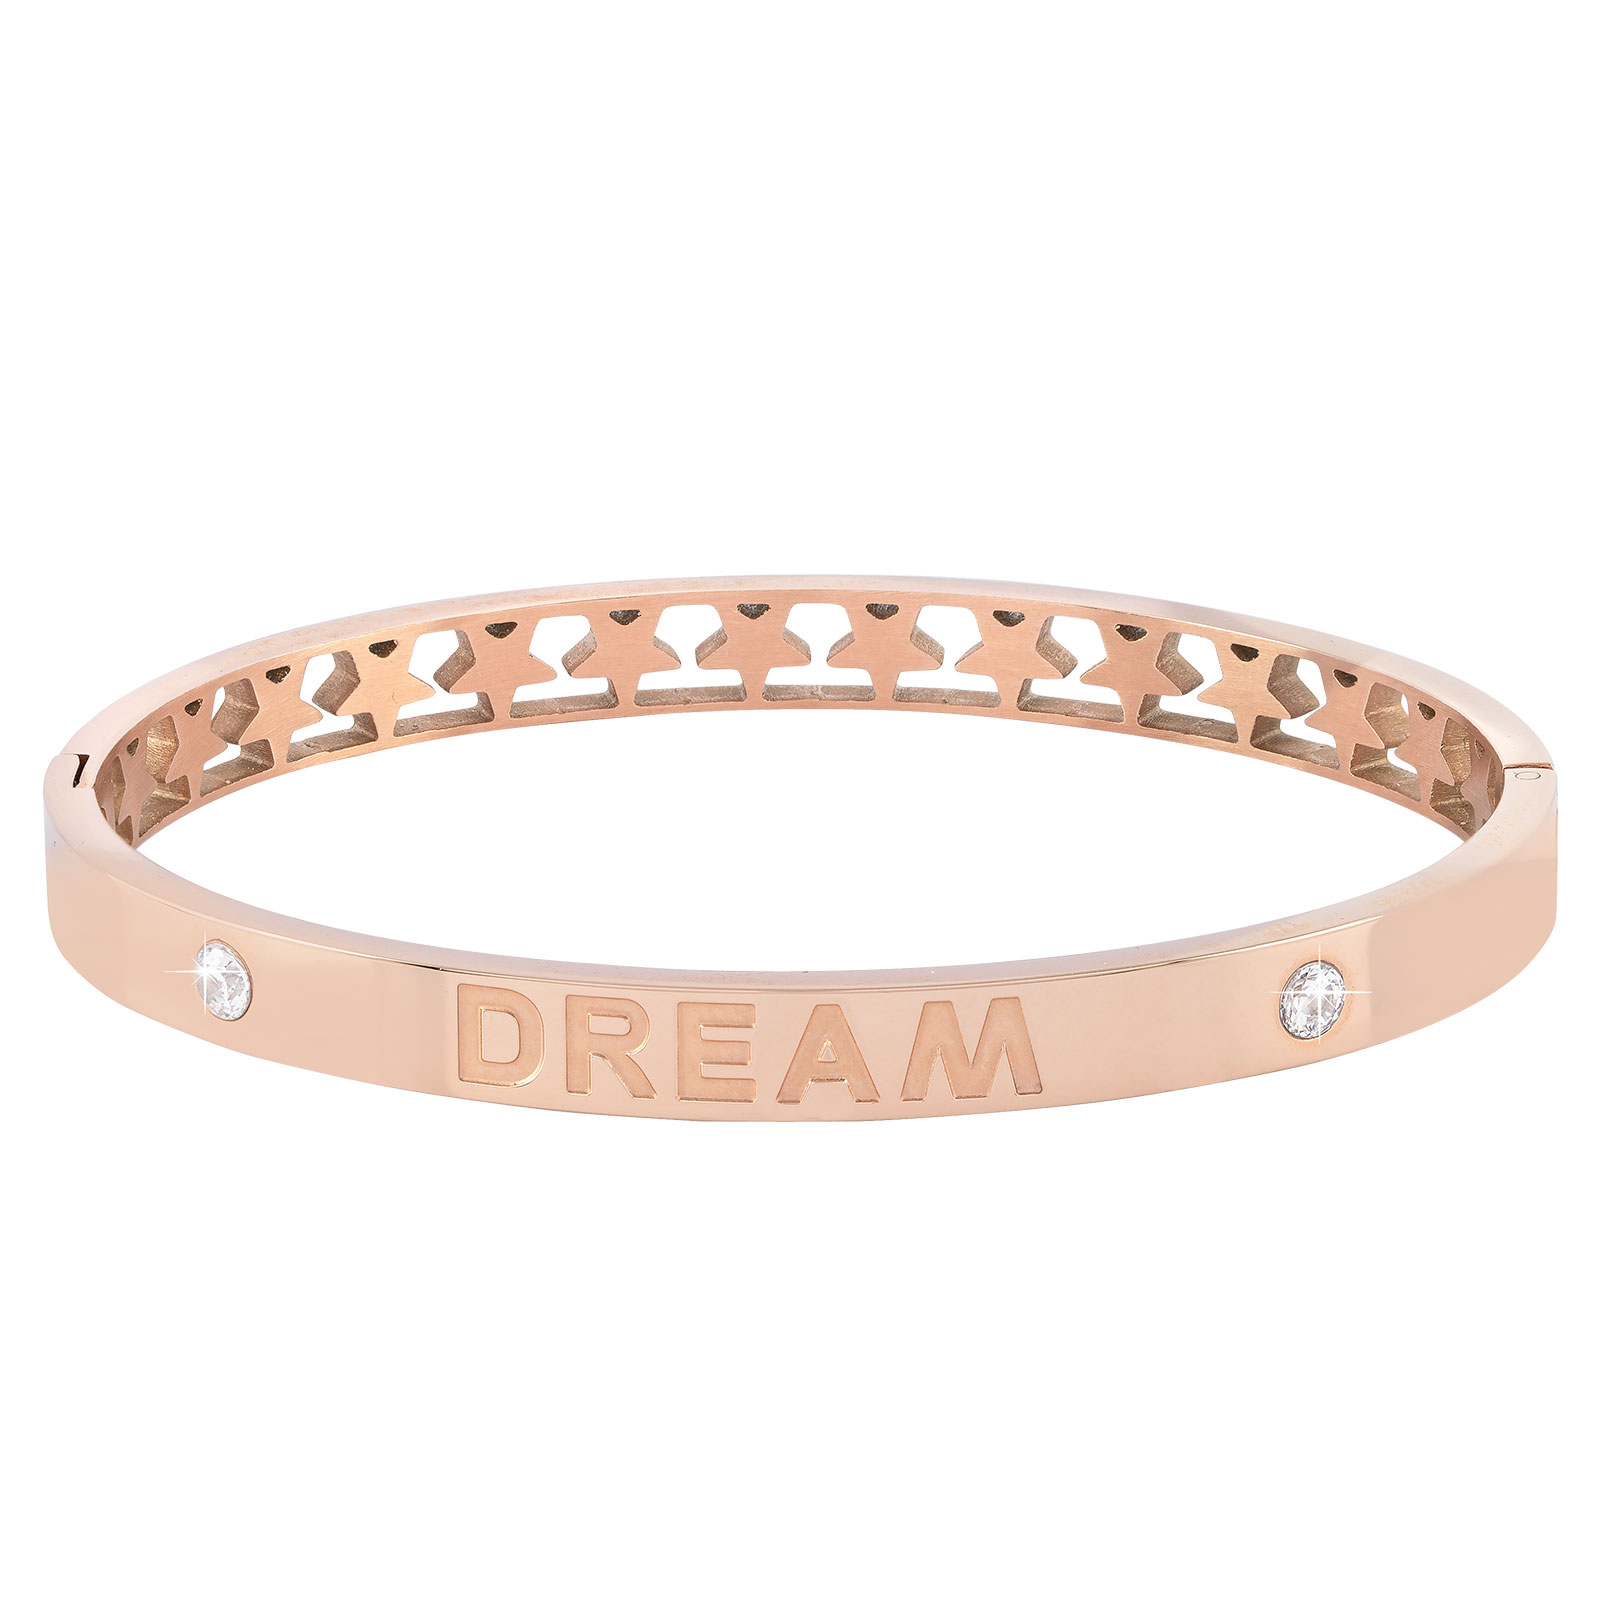 Armband stål, bangle med texten Dream